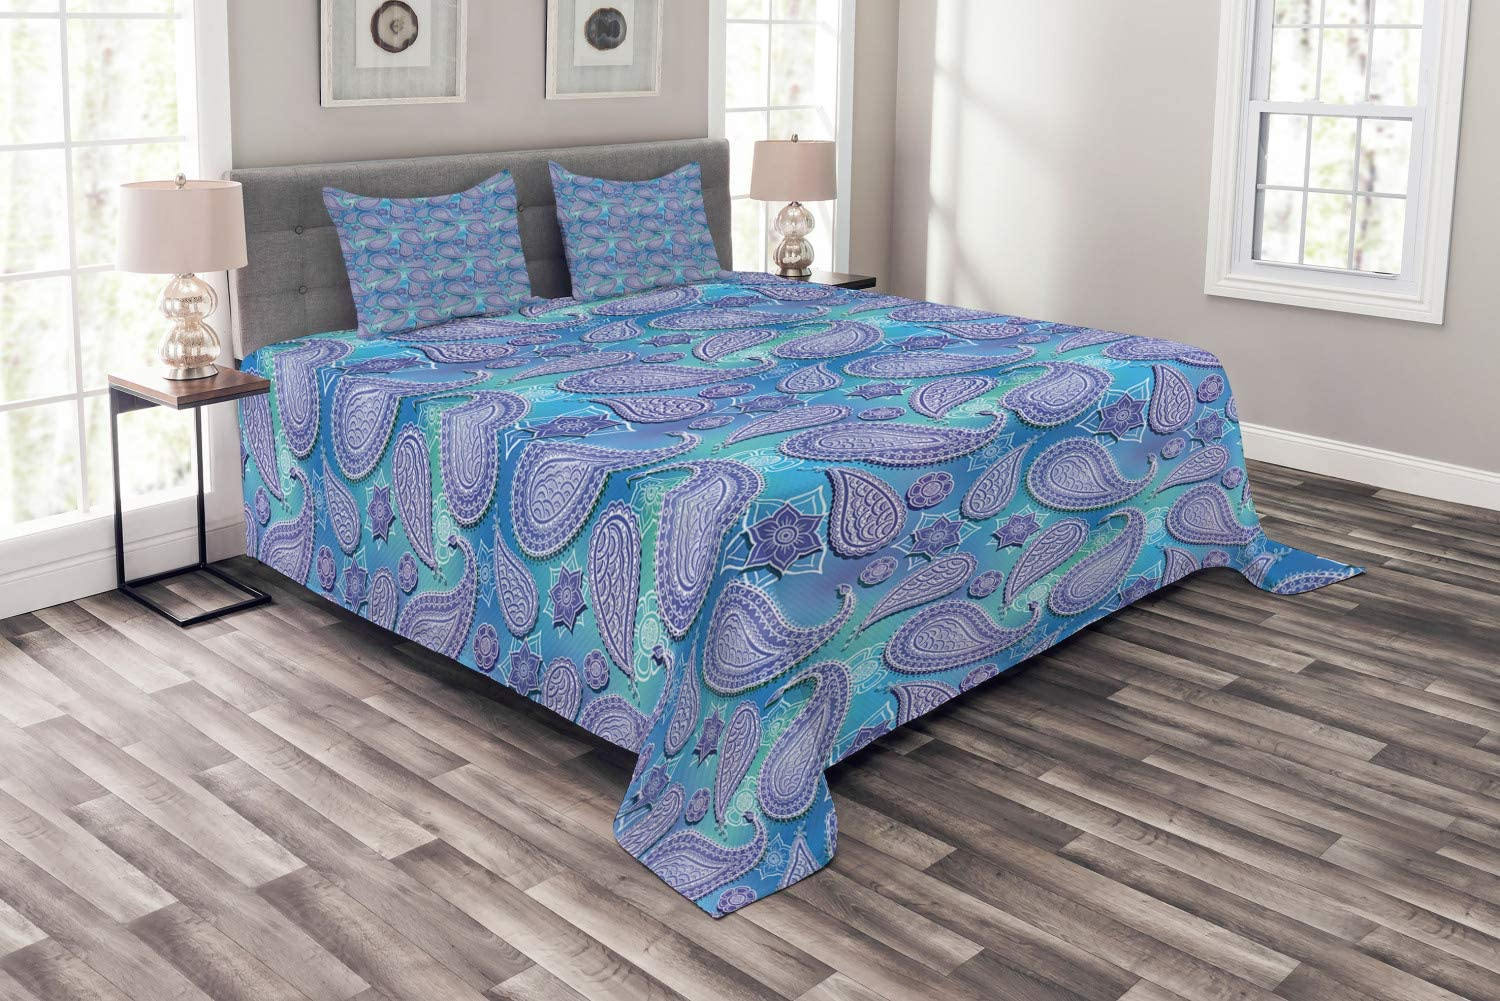 Lunarable Aqua Paisley Bedspread, Repetitive Pastel Teardrop Shaped Eastern Motif, Decorative Quilted 3 Piece Coverlet Set with 2 Pillow Shams, Queen Size, Dark Ceil Blue Seafoam and Deep Sky Blue